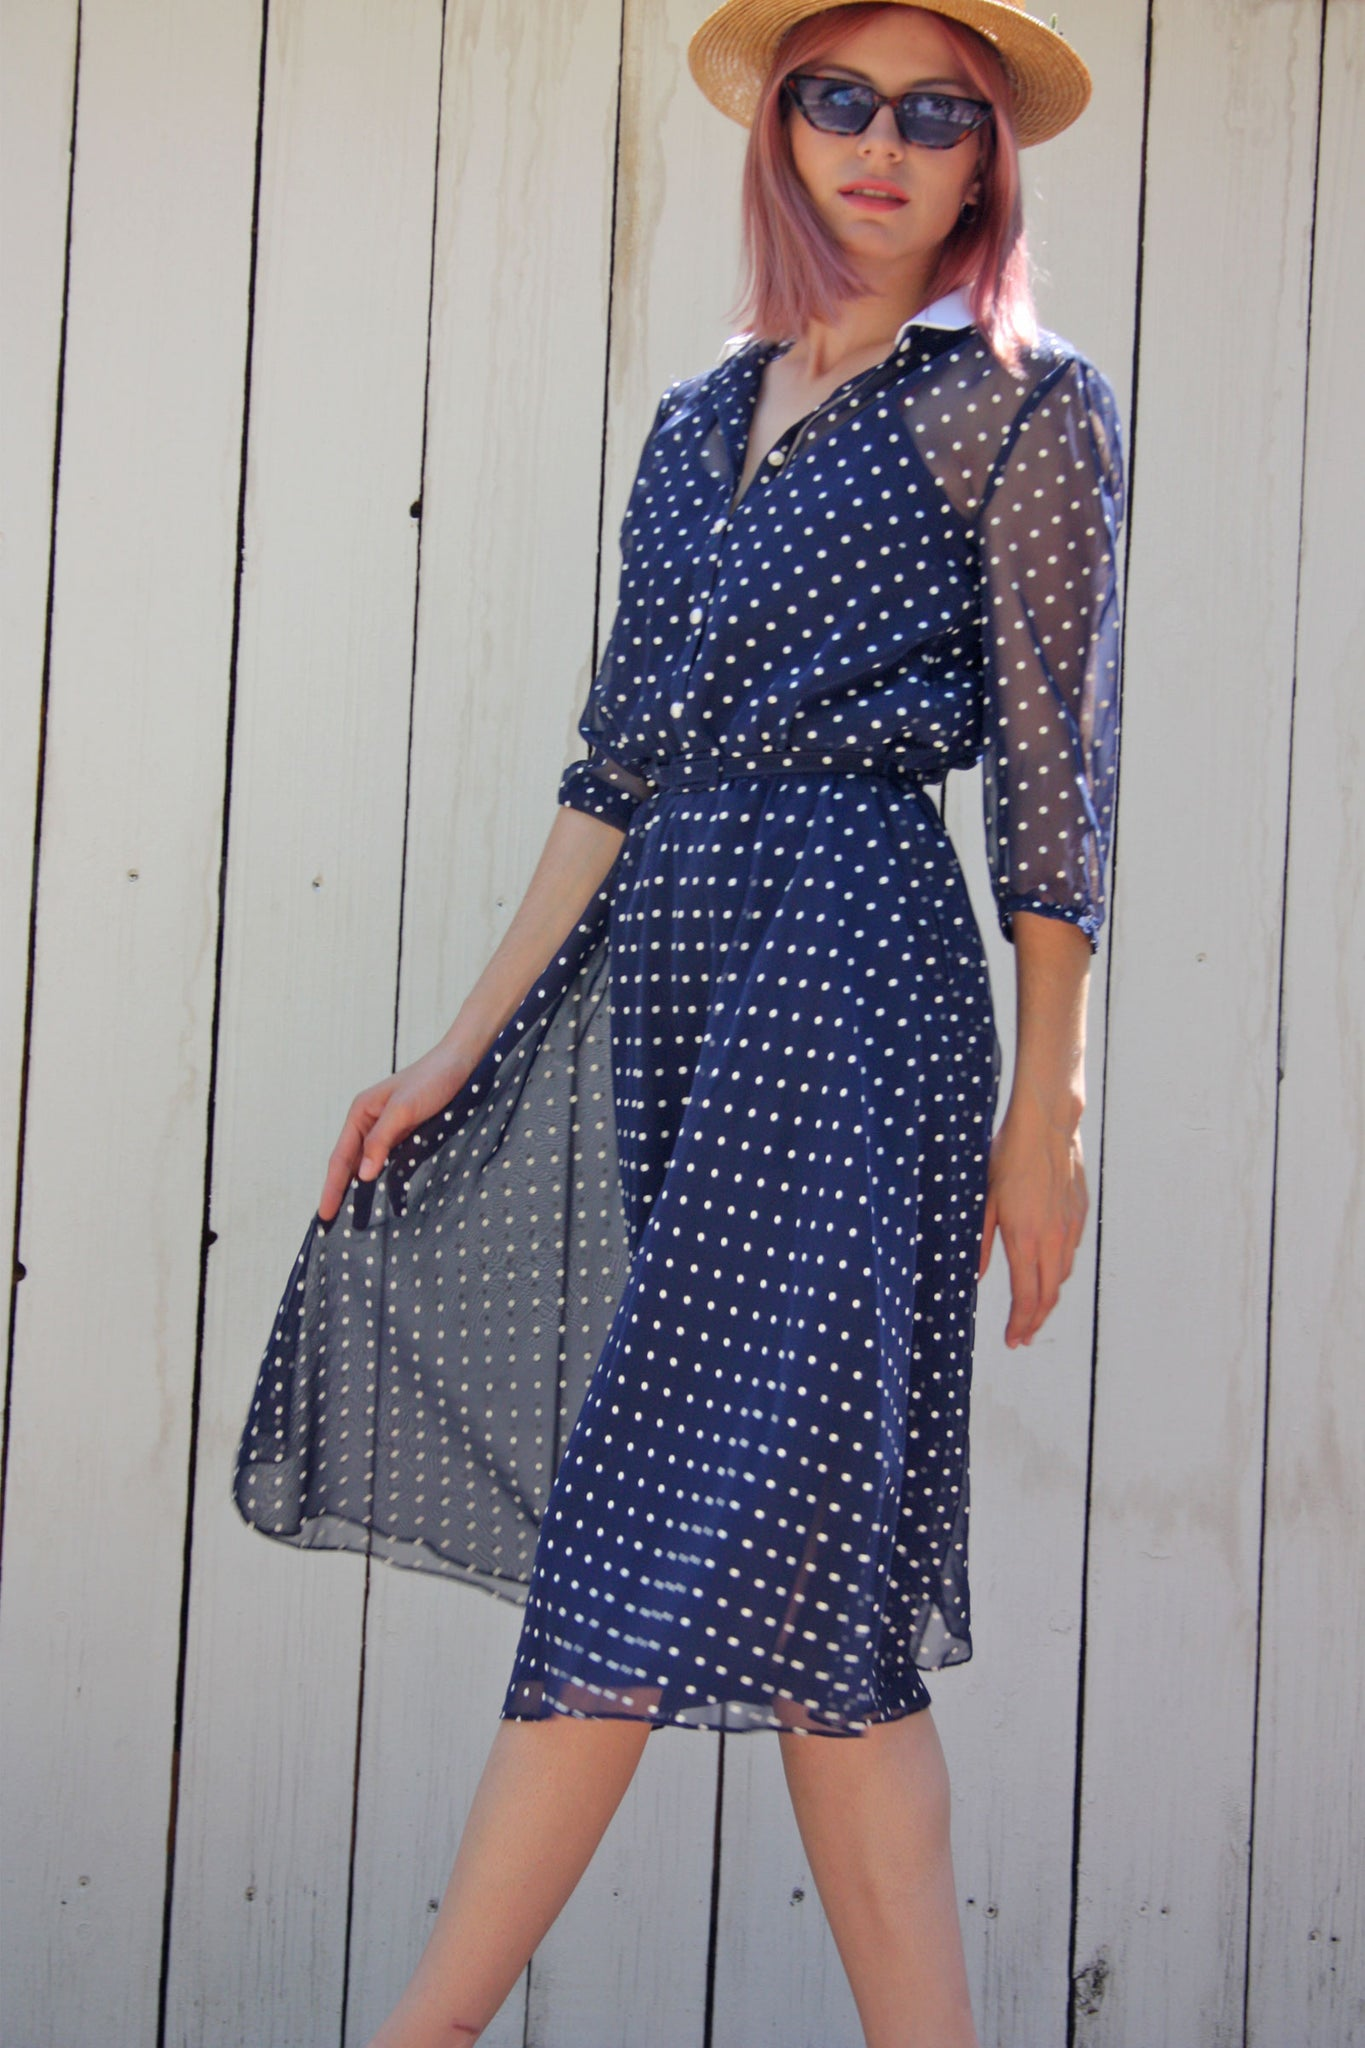 Vintage retro navy polka dot dress - Shop SoLovesVintage